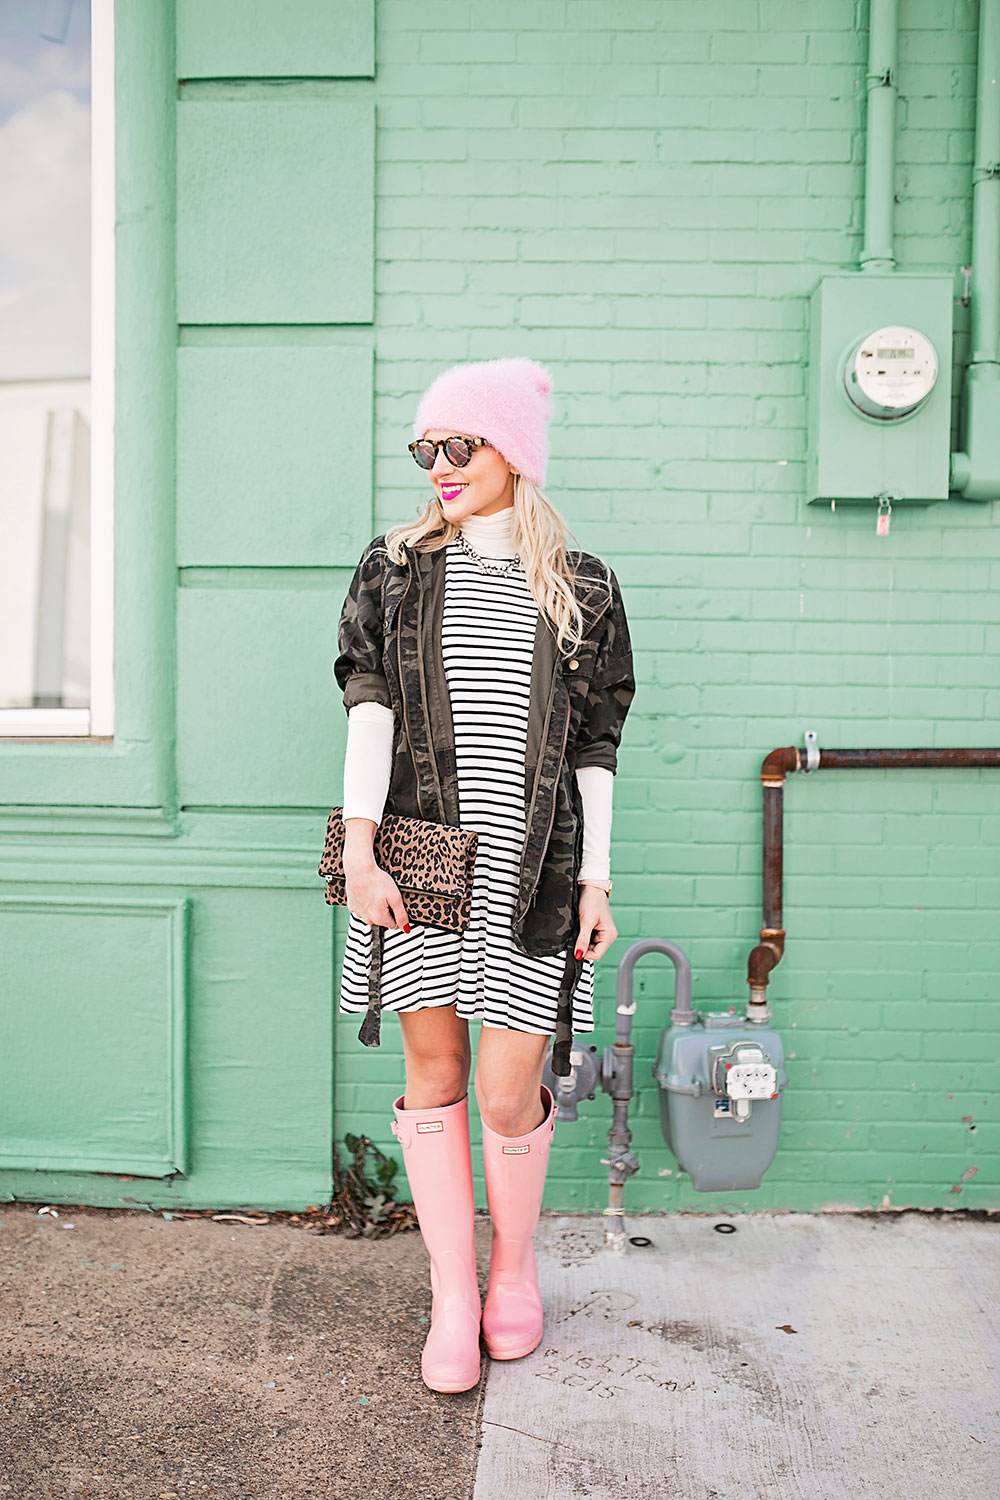 Camouflage and Stripes Outfit